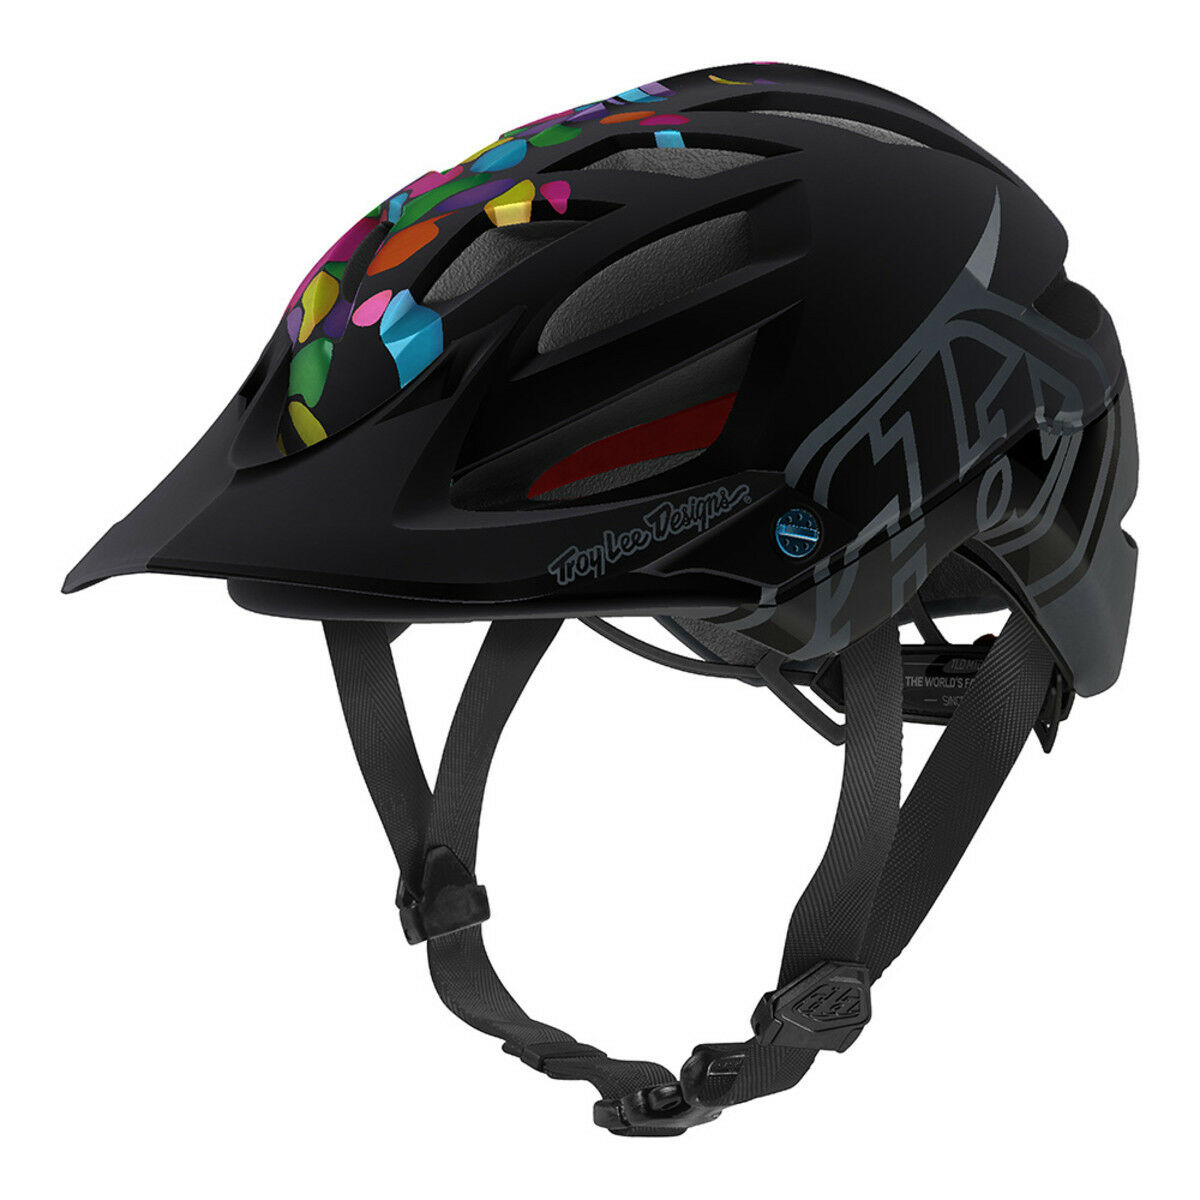 2018 Tld Troy Lee Designs Giovani A1 Mips Gelatina Mountain Bike Casco Dh Cycle